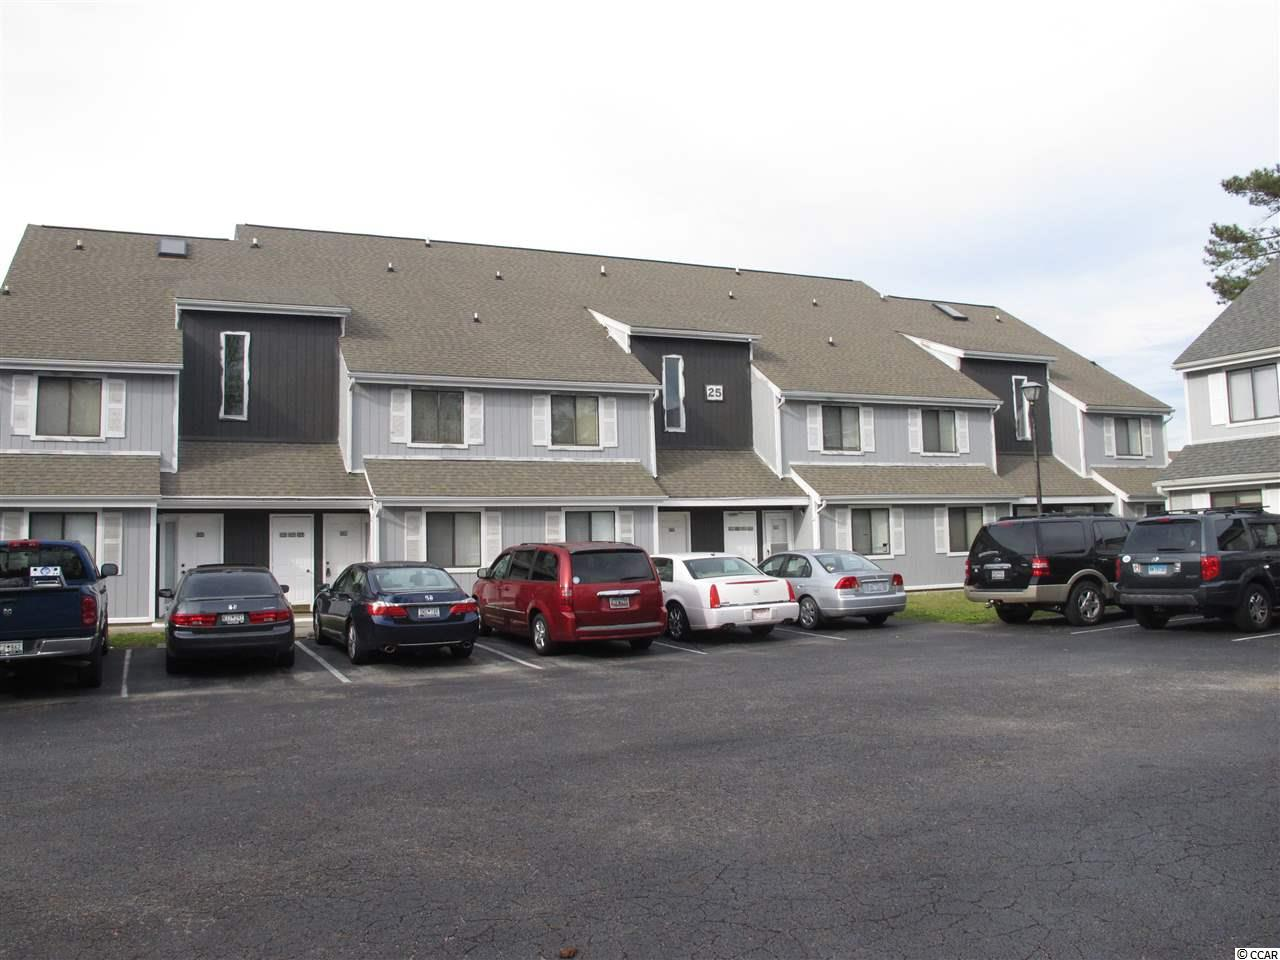 Great investment opportunity. Tenant in place until October 2019. Great opportunity to buy as an investment property or a primary condo residence close to hospital, shopping and easily accessible to US 31 and US 17.